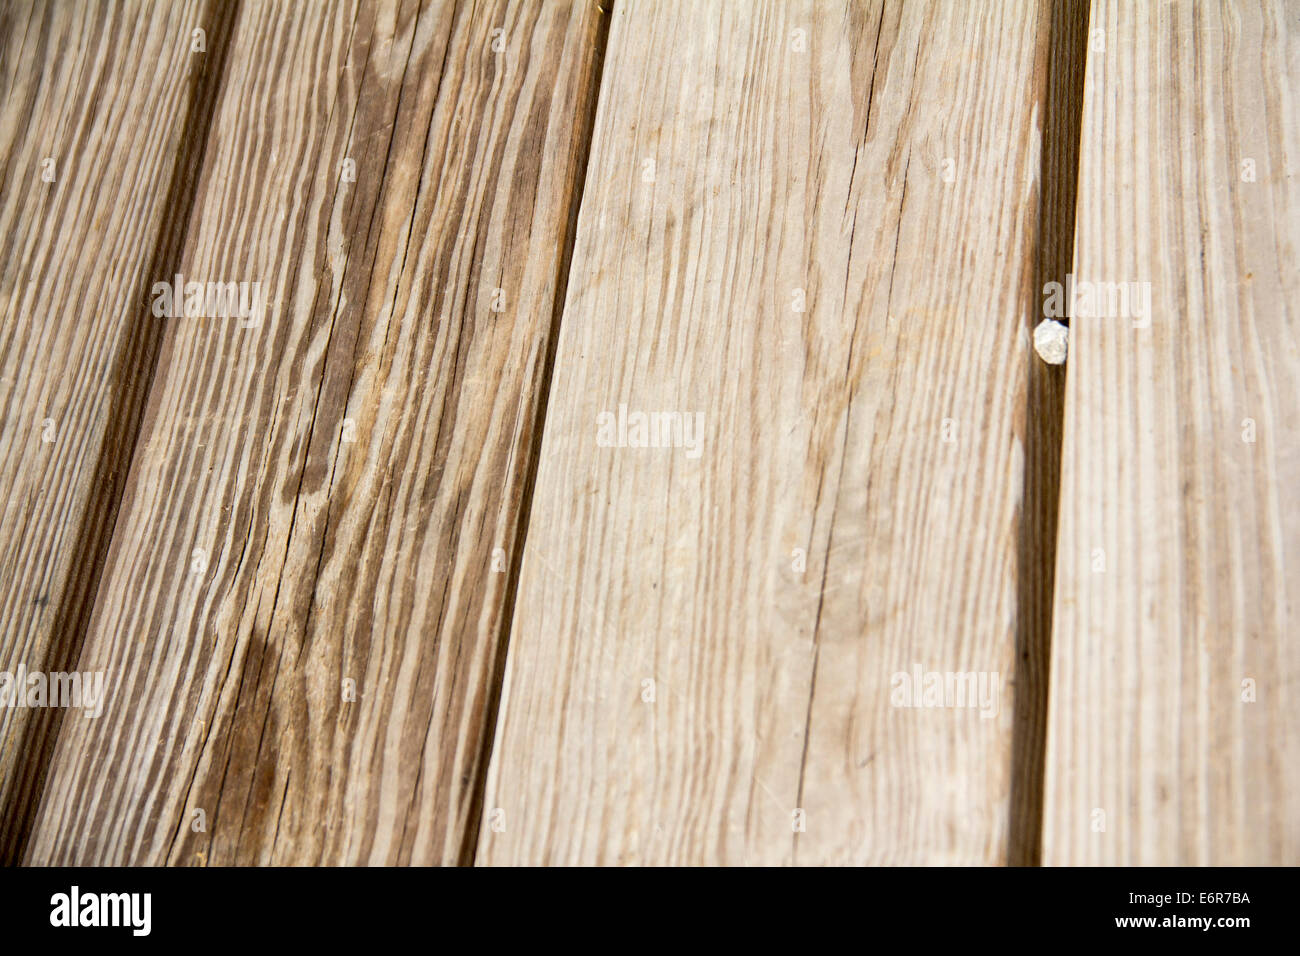 Wood Grain Background with Pebble Wedged in Between - Stock Image